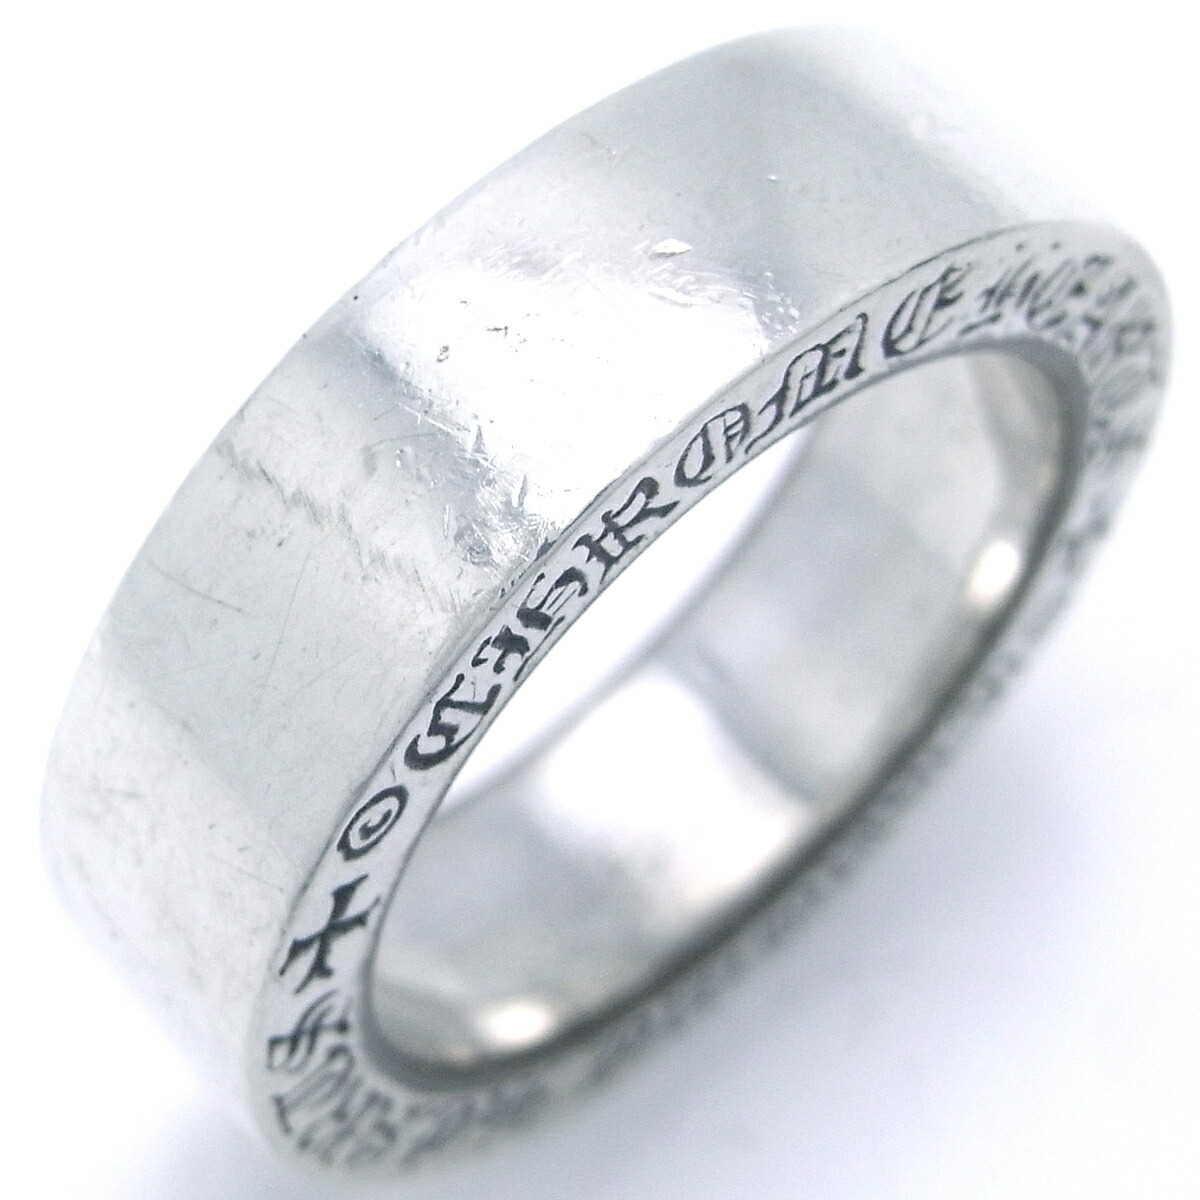 8a3cd600926 Detalles acerca de Auth Chrome Hearts Silver 925 Spacer 6mm Plain Ring  9.5  (Japan Size) (DH45388)